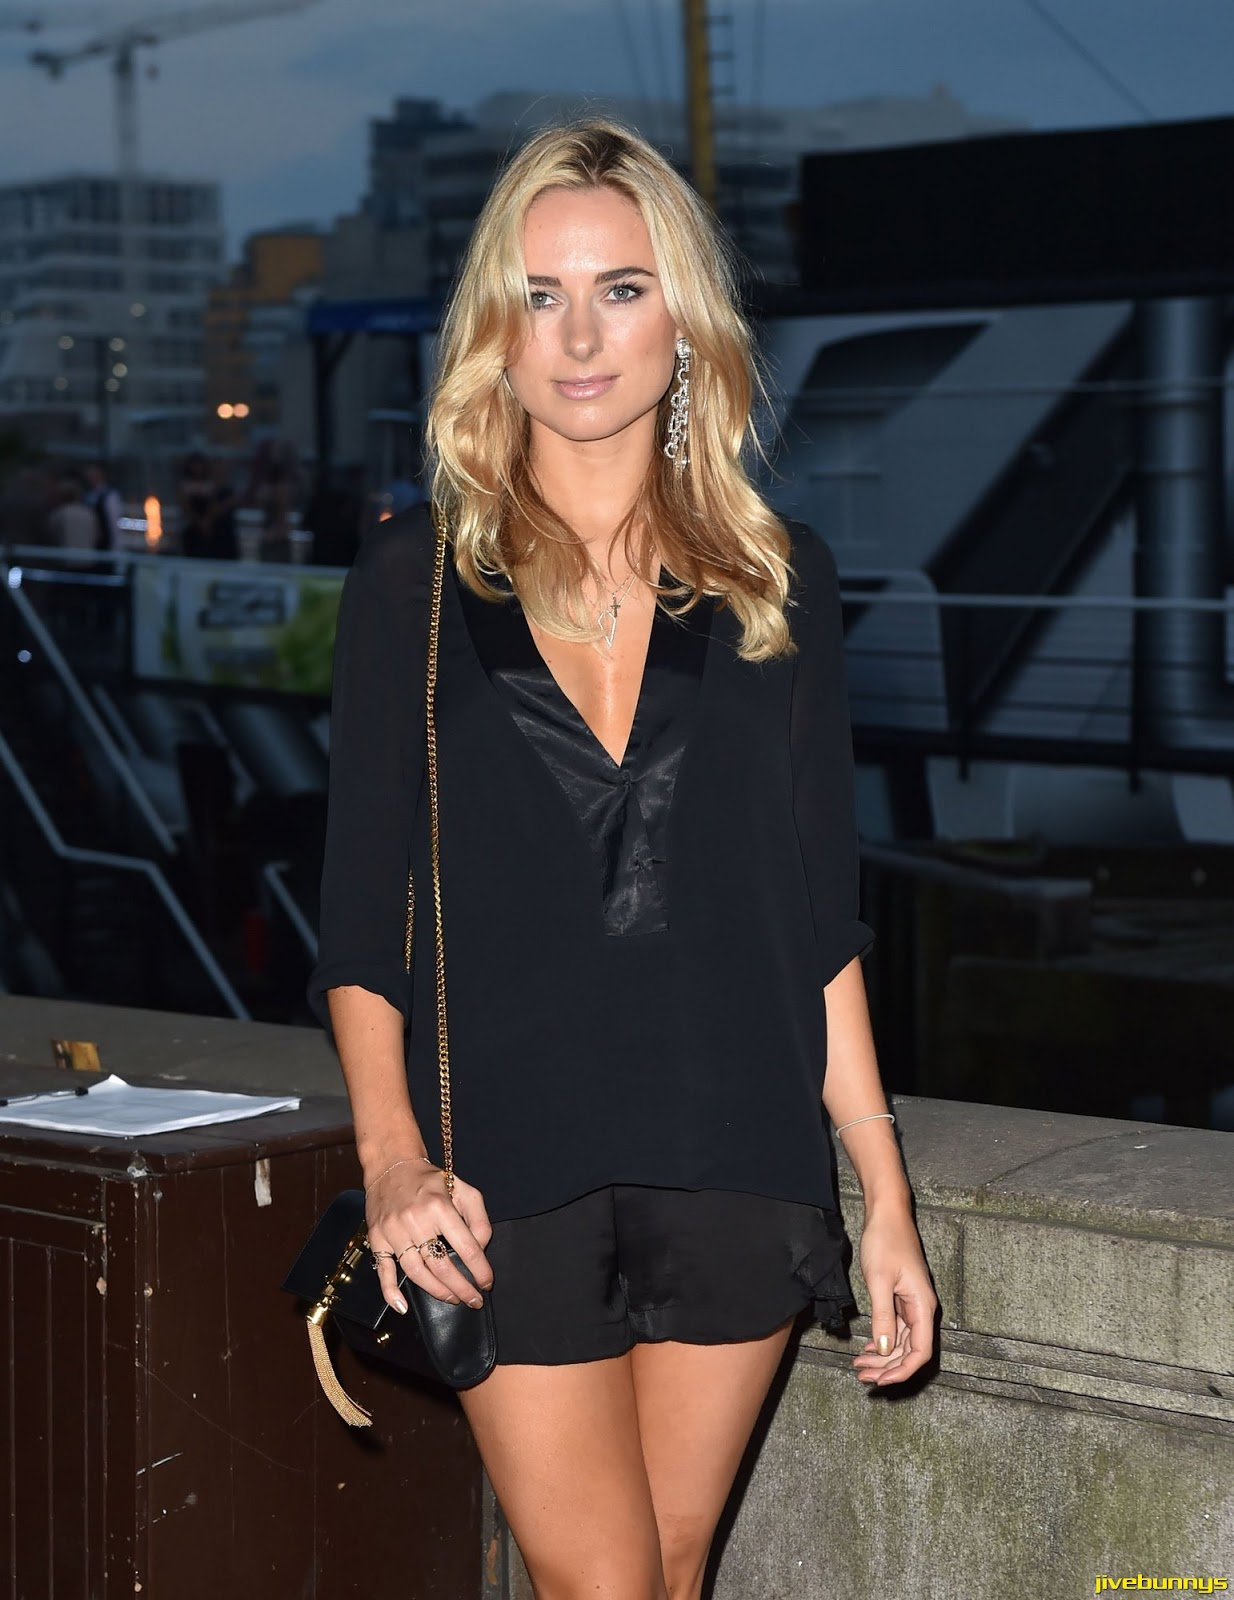 Kimberley Garner - Sexy Mac launch party on HMS President, London - 18/09/2014